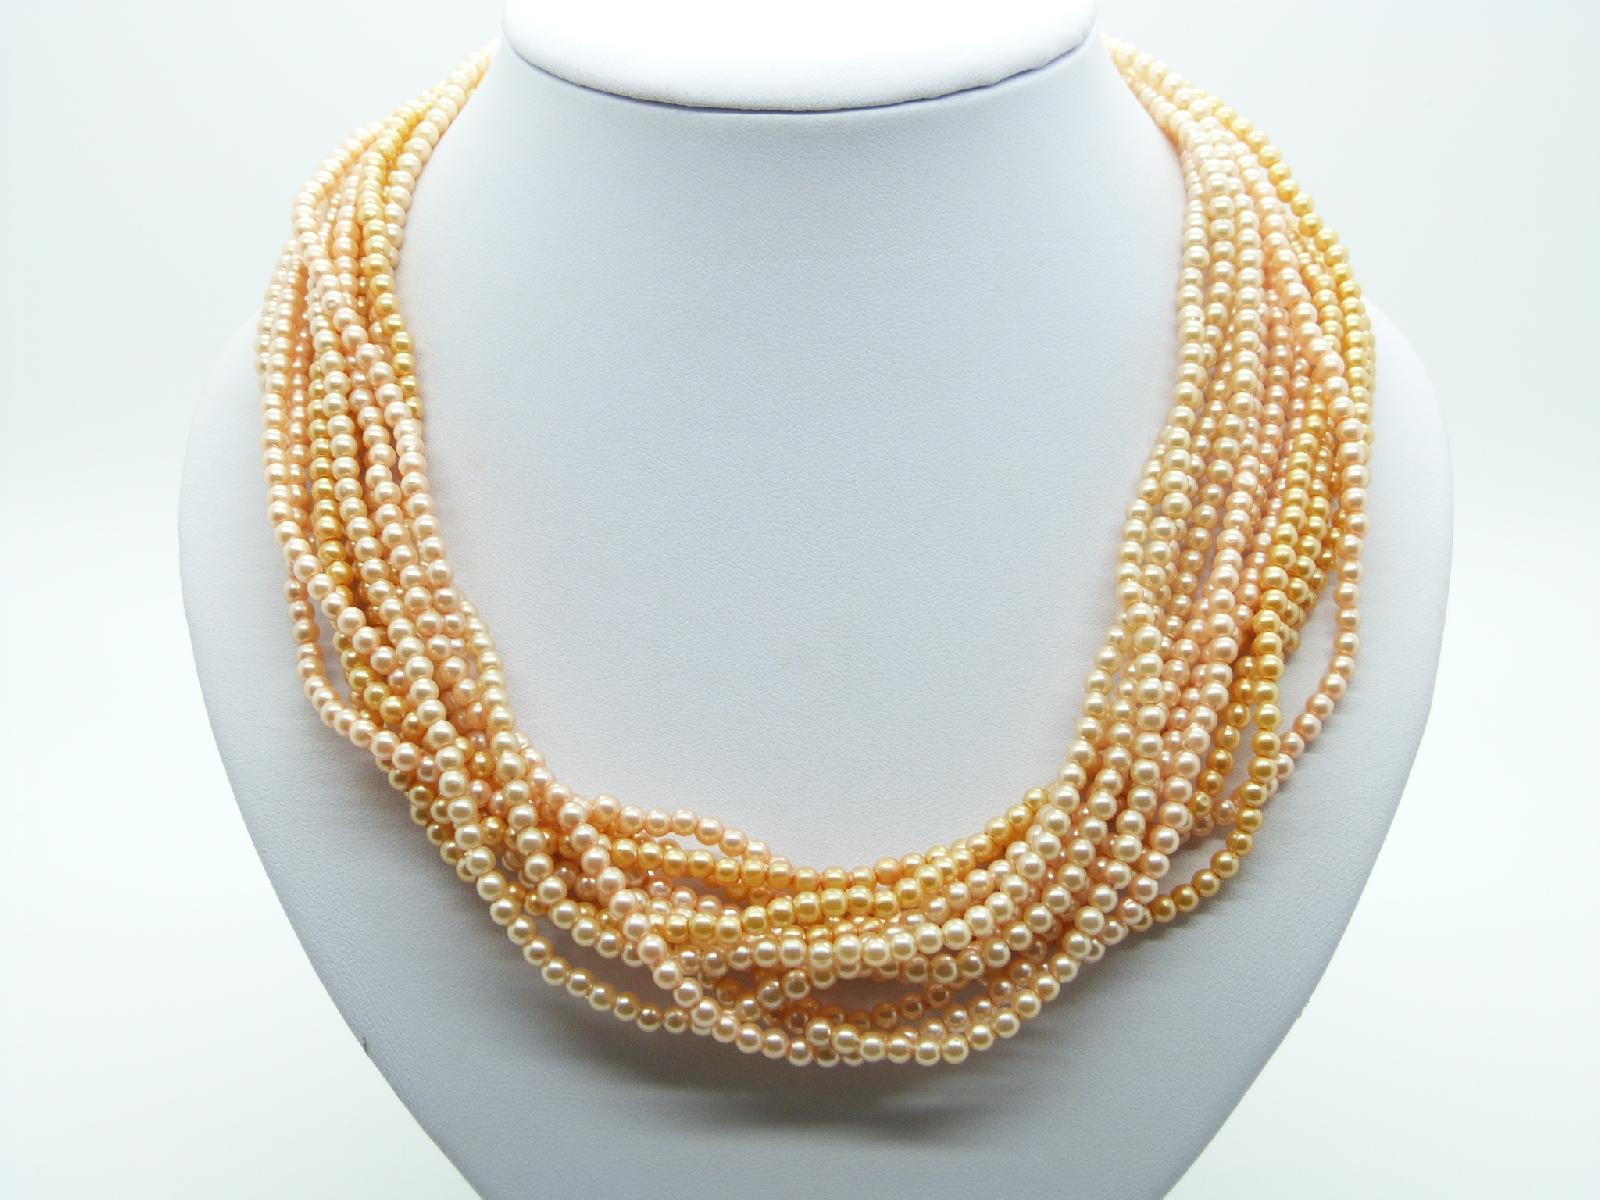 Vintage 50s Multi Strand Shades of Orange Faux Pearl Plastic Bead Necklace